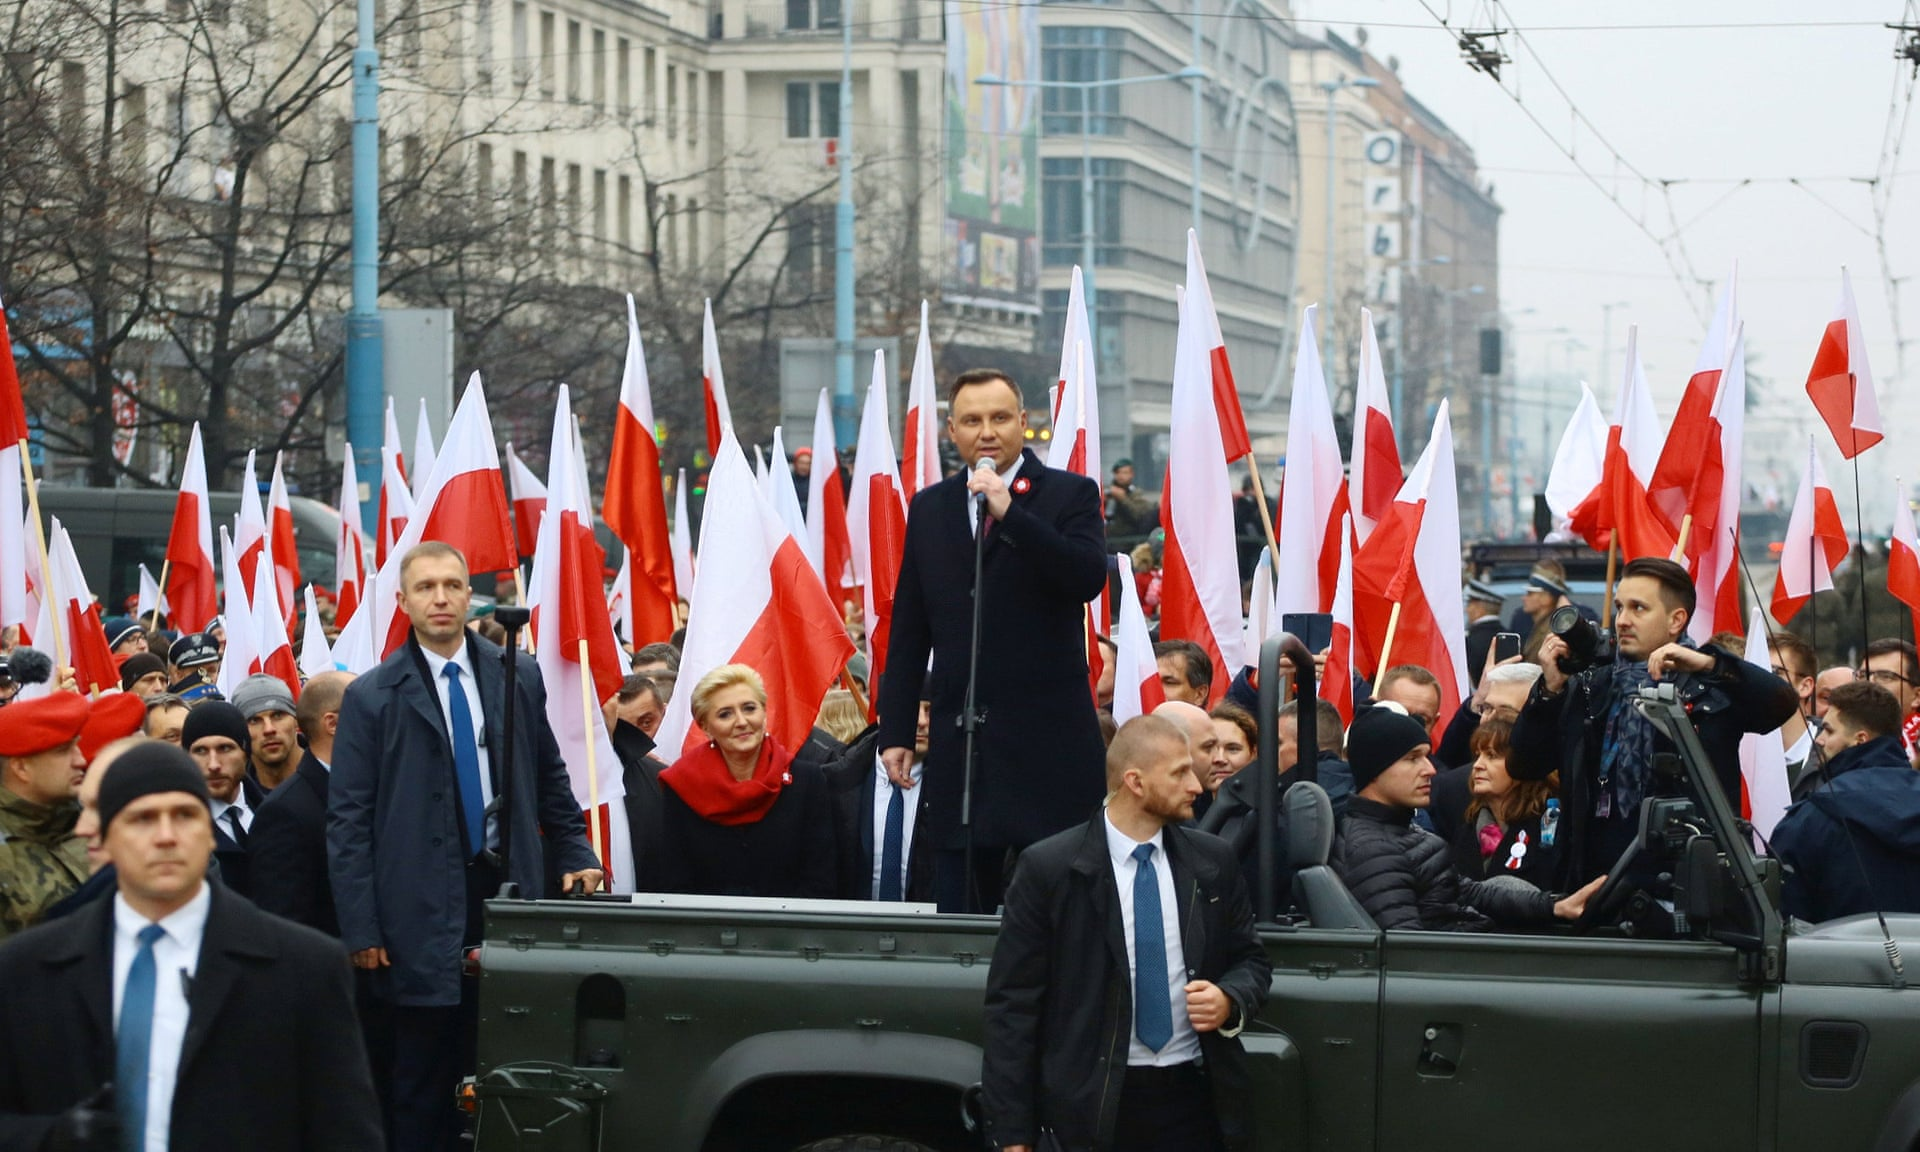 Poland's president, Andrzej Duda, addresses the crowds before the official start of a march marking the 100th anniversary of Polish independence in Warsaw on 11 November.